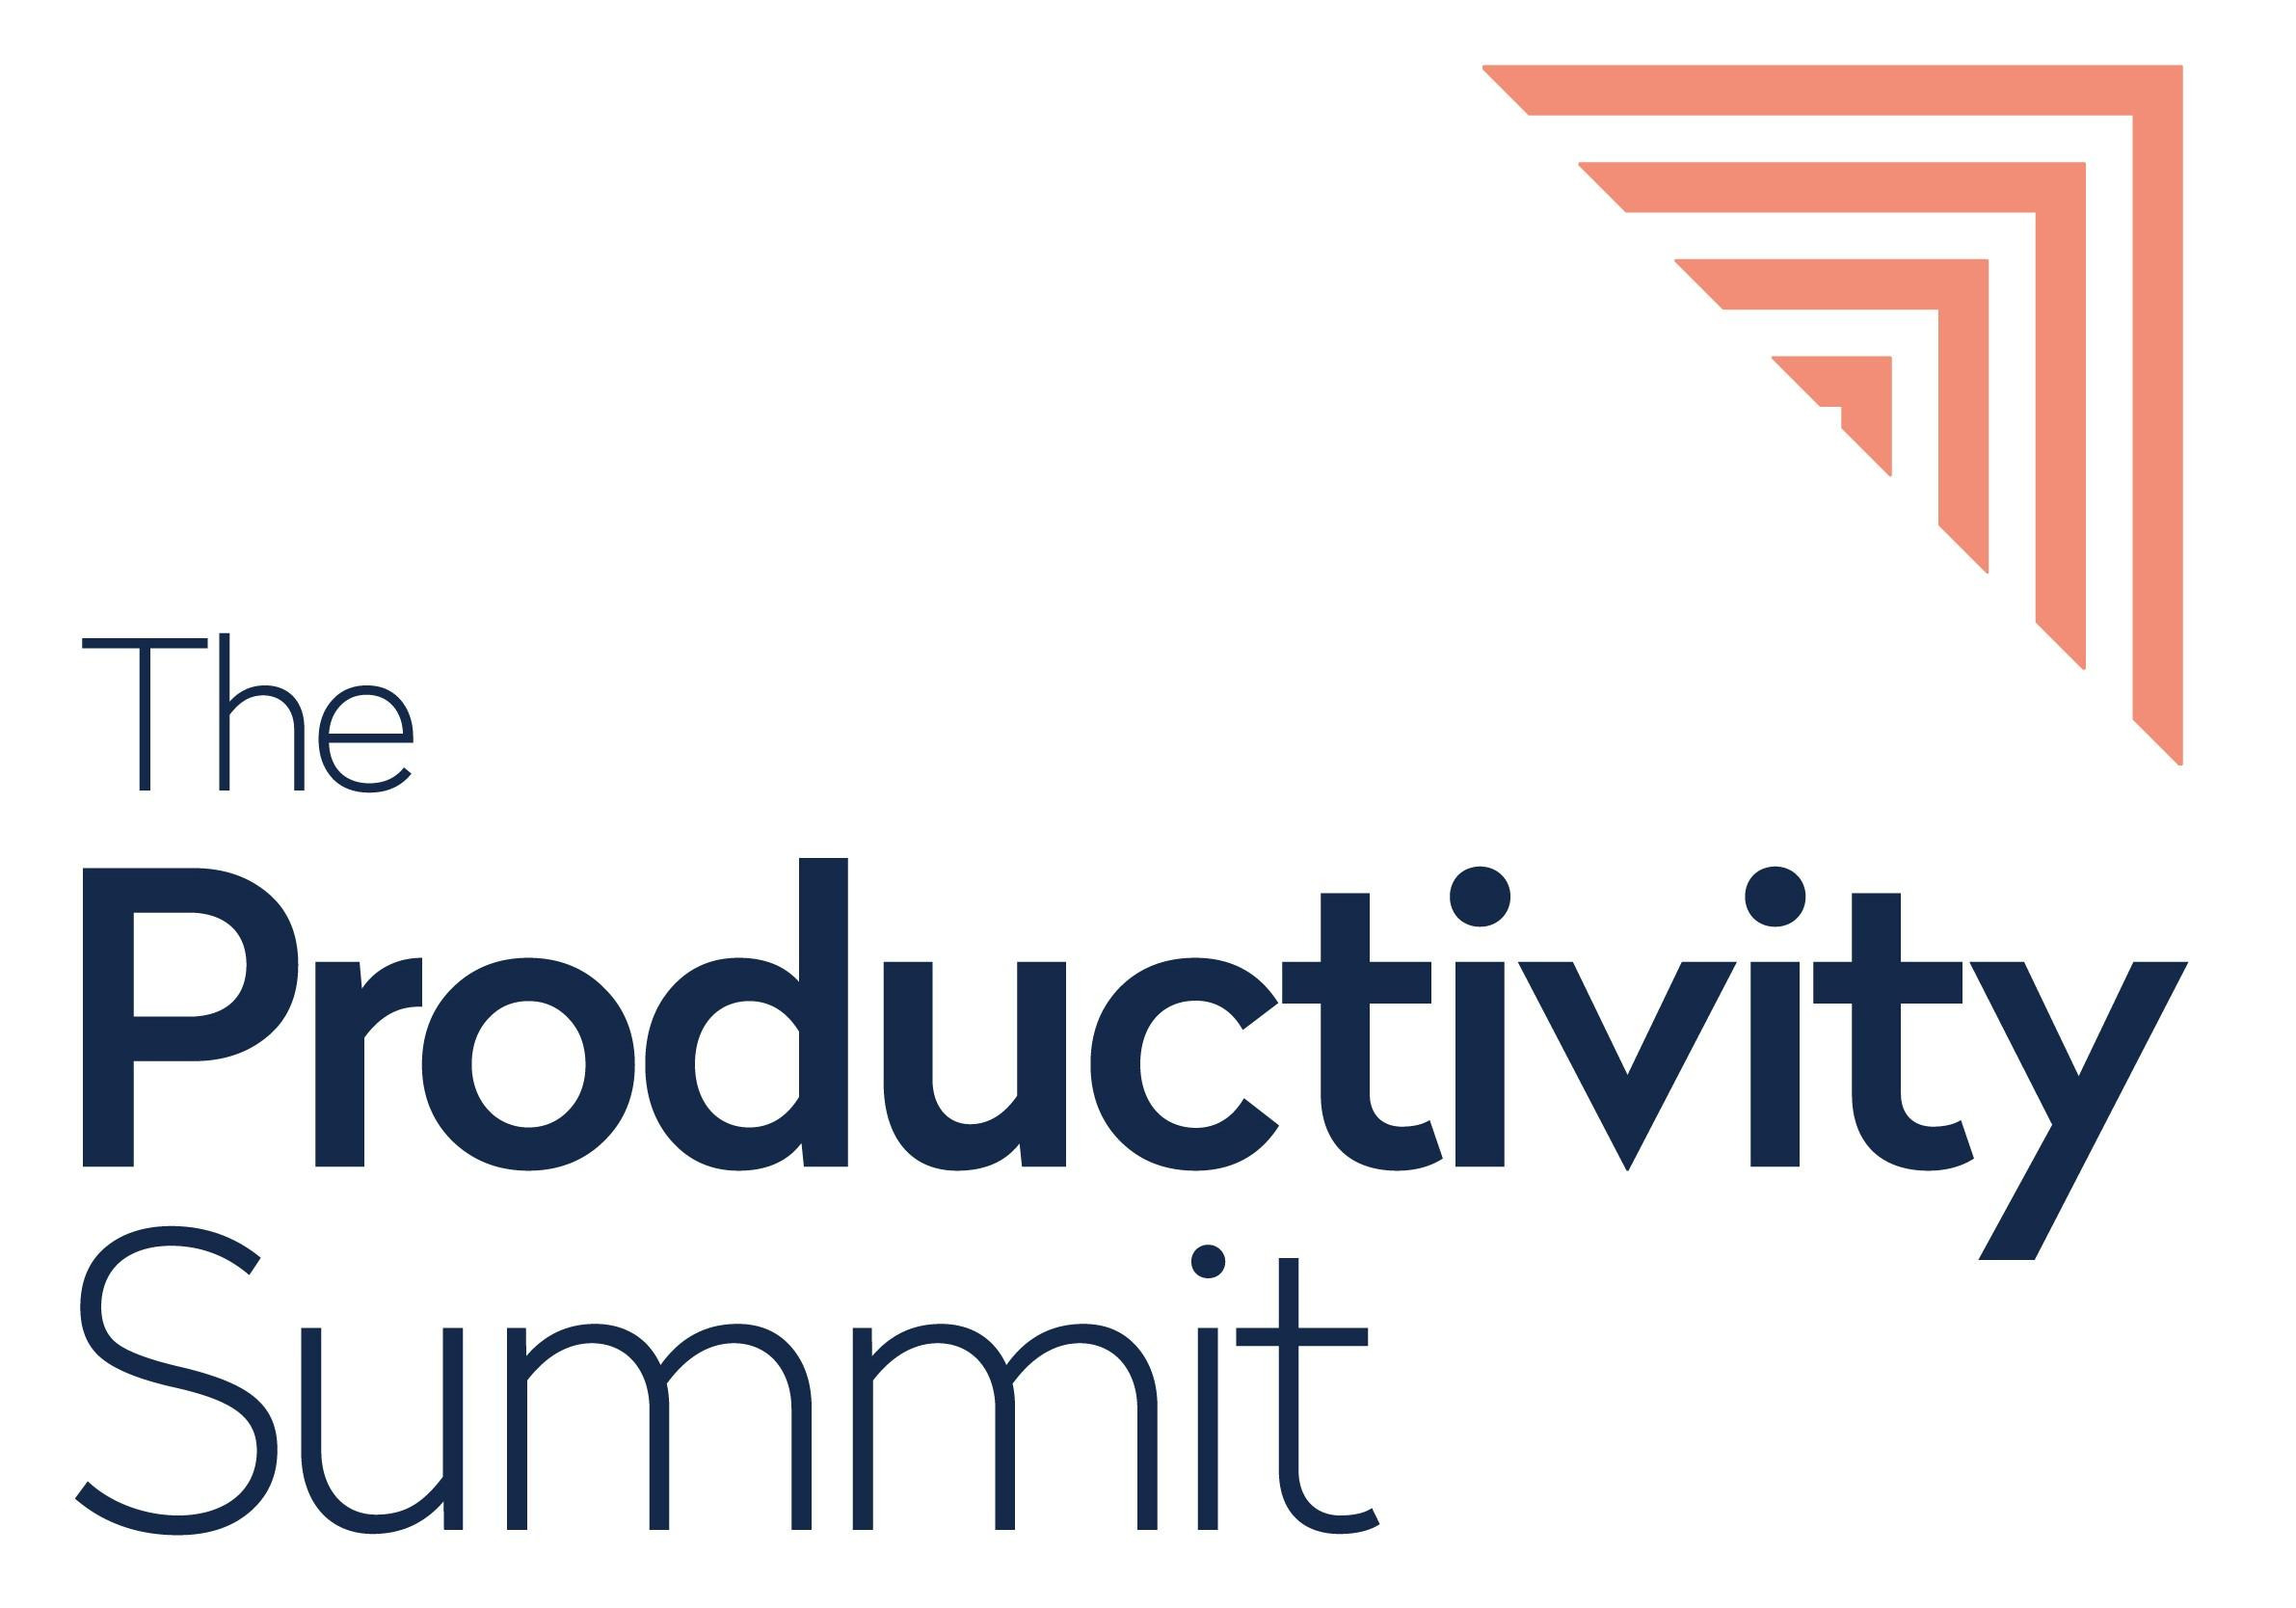 The Productivity Summit